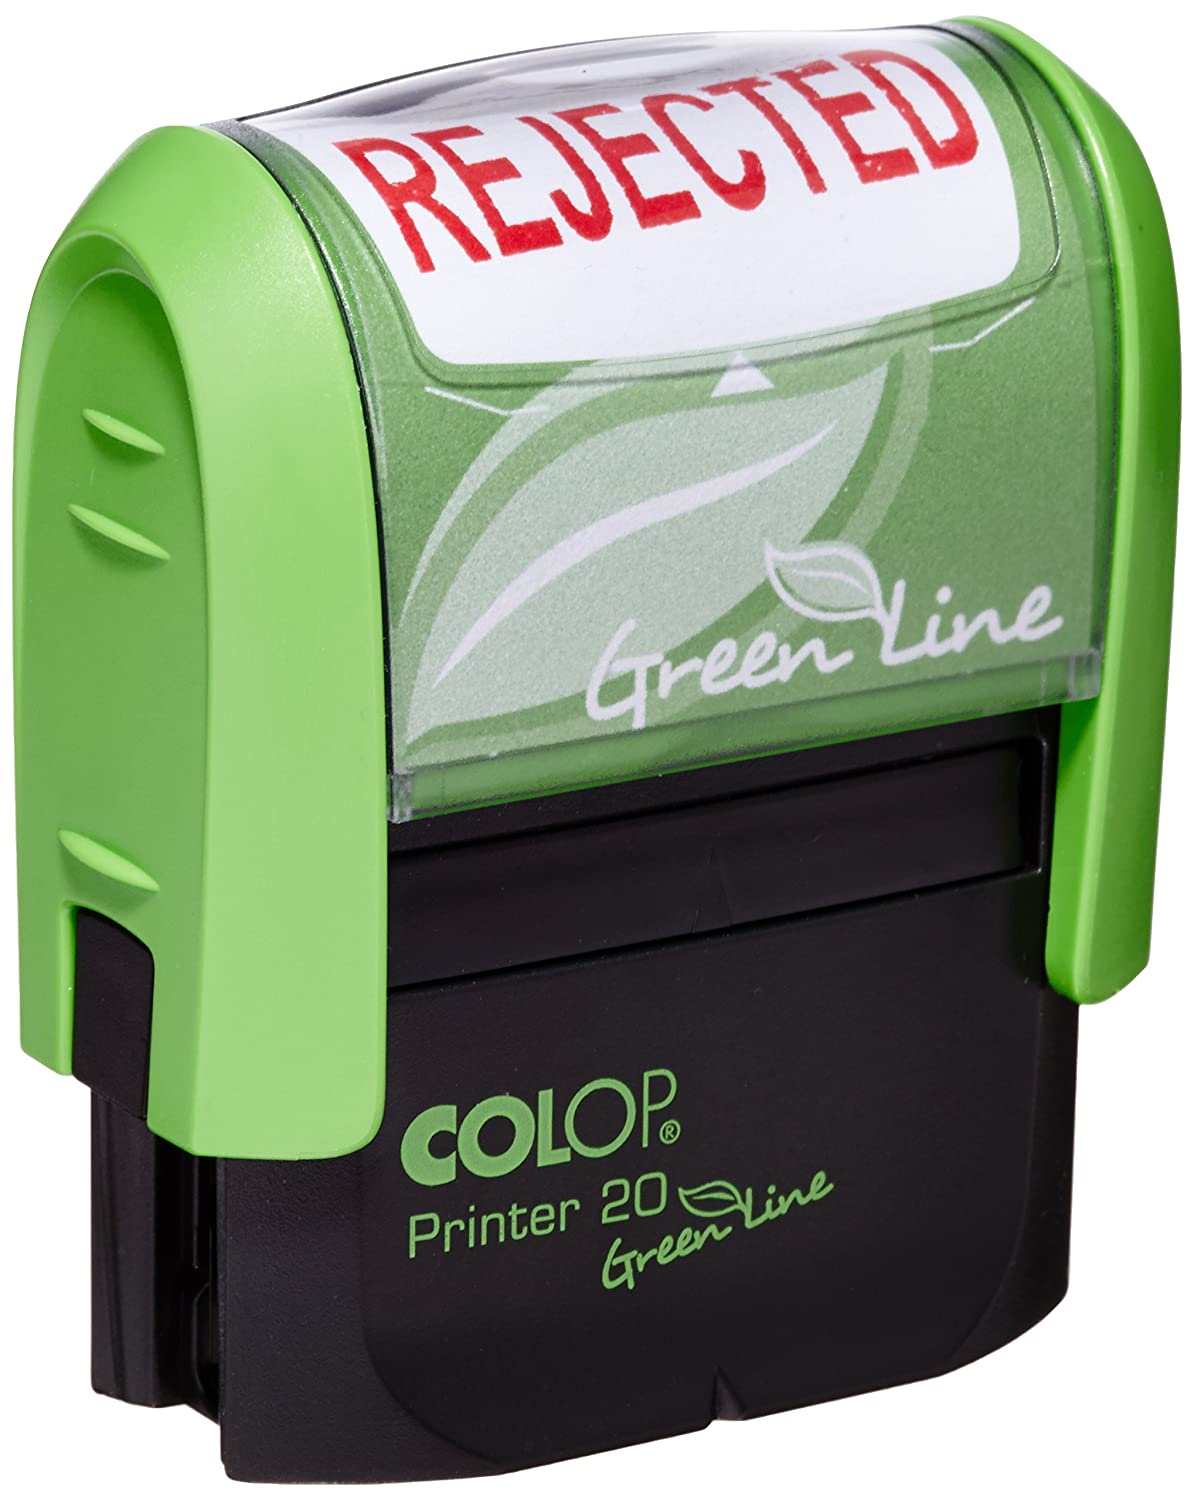 COLOP Green Line - Timbro'Rejected' P20GLREJ